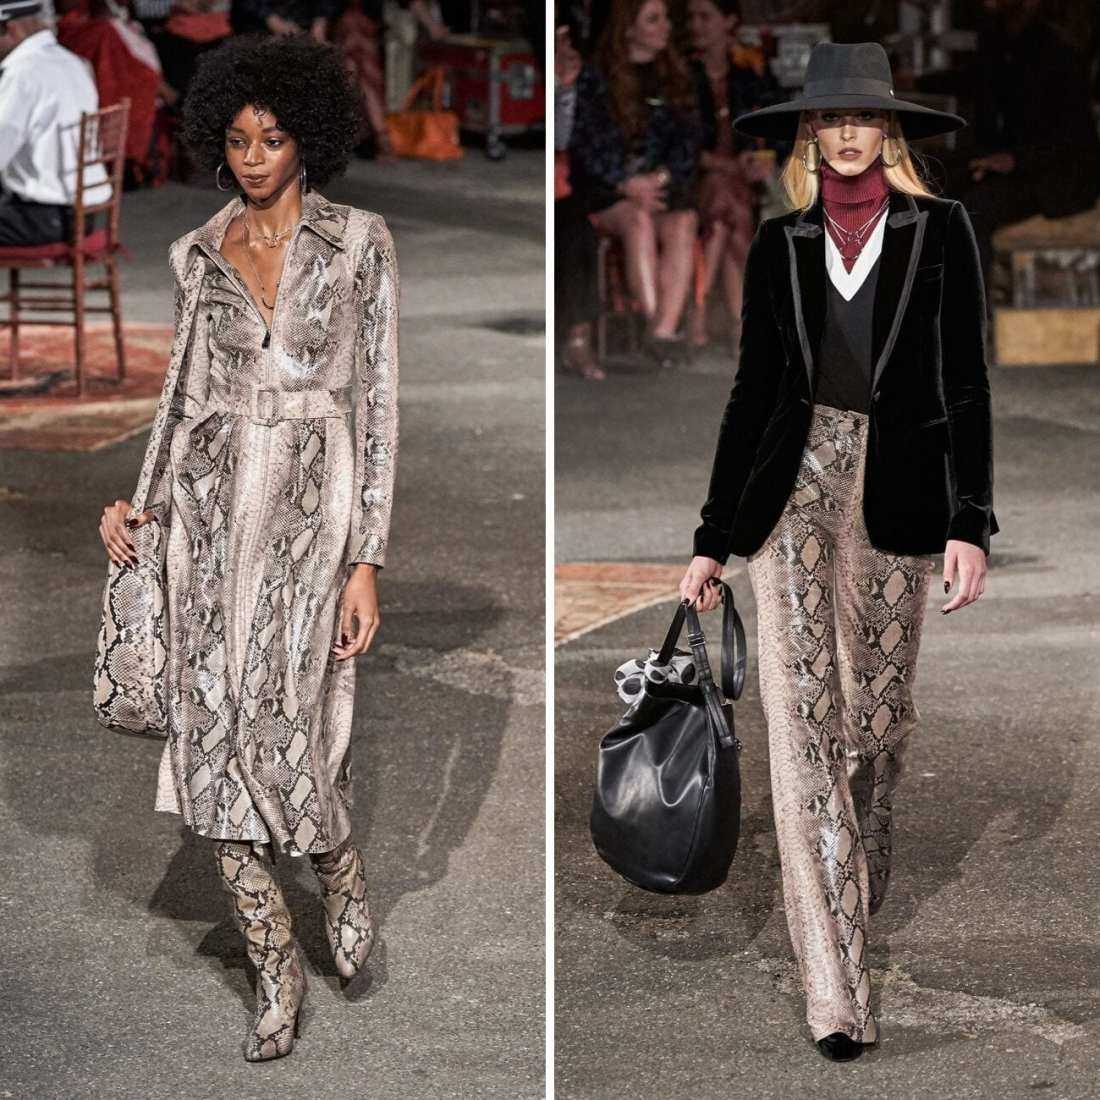 TommyxZendaya Fall 2019 with two models walking down runway. wearing snake skin and menswear for women fashion trend